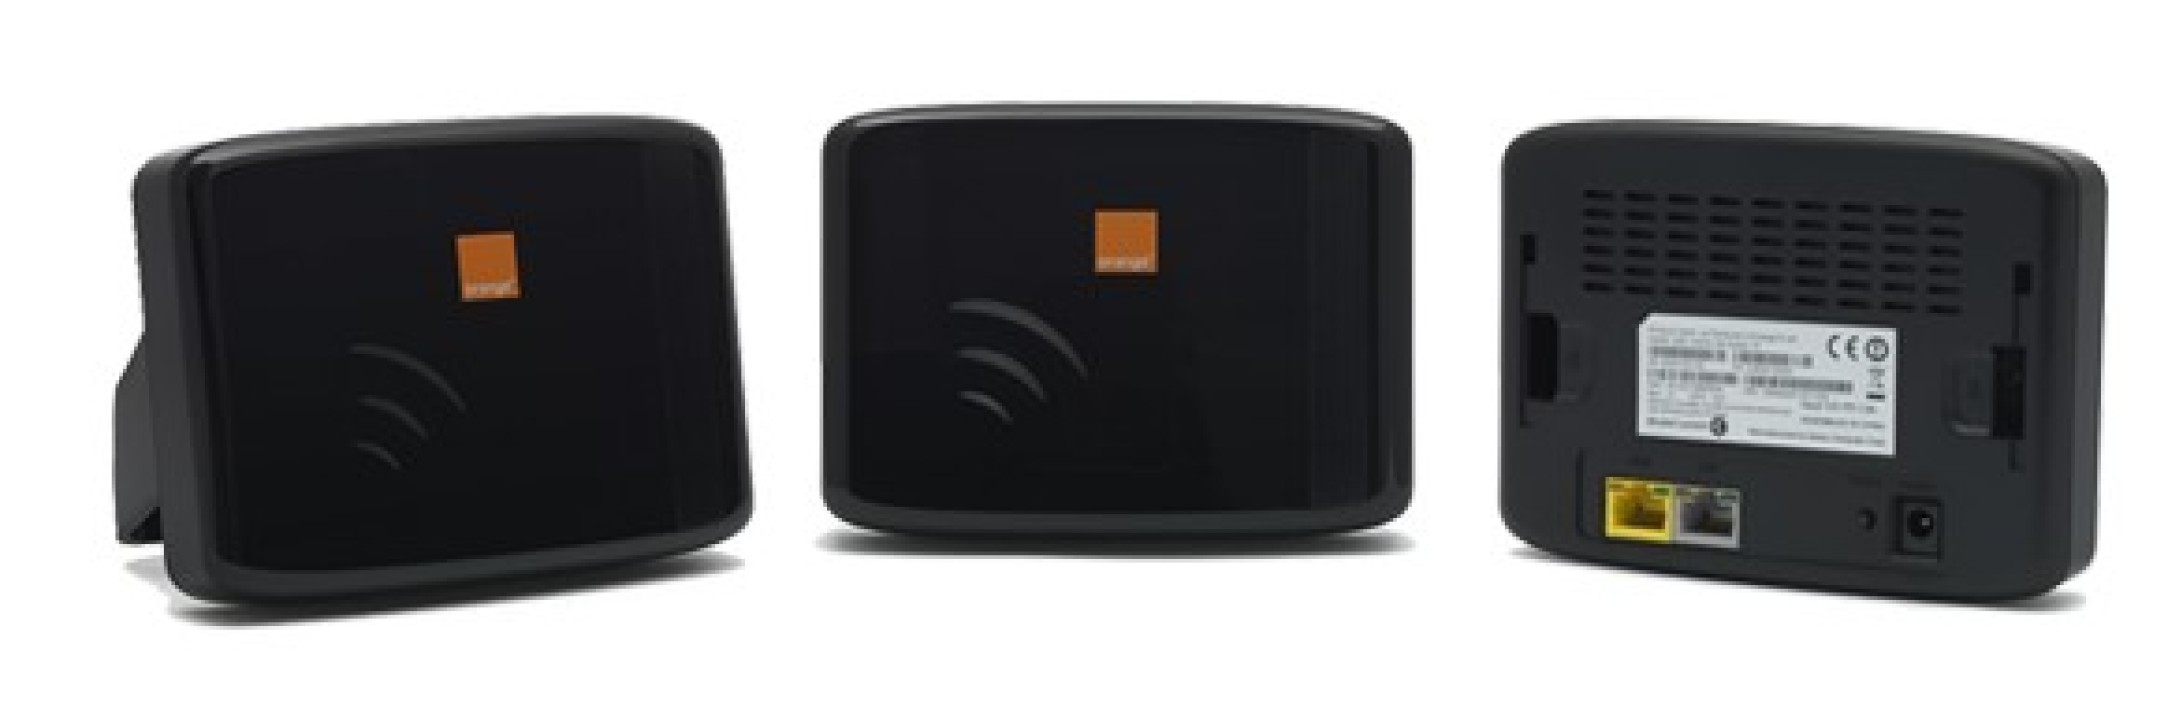 la v3 du bo tier femtocell d 39 orange g re huit utilisateurs simultan ment. Black Bedroom Furniture Sets. Home Design Ideas